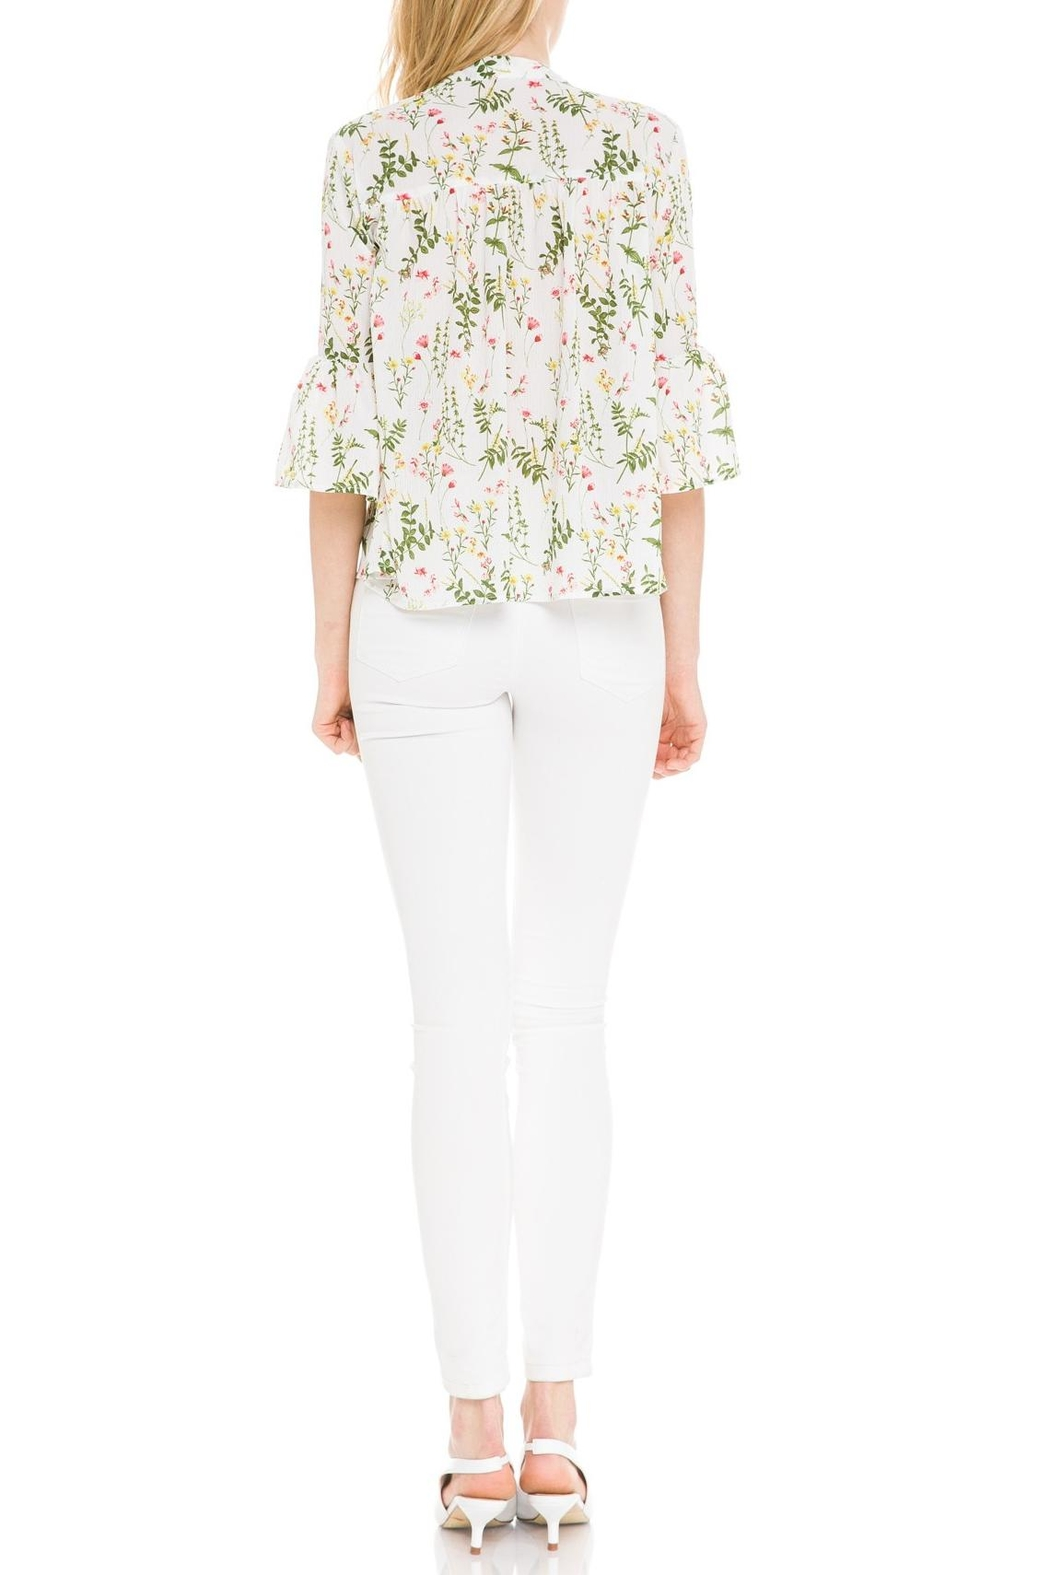 After Market Garden Party Blouse - Back Cropped Image